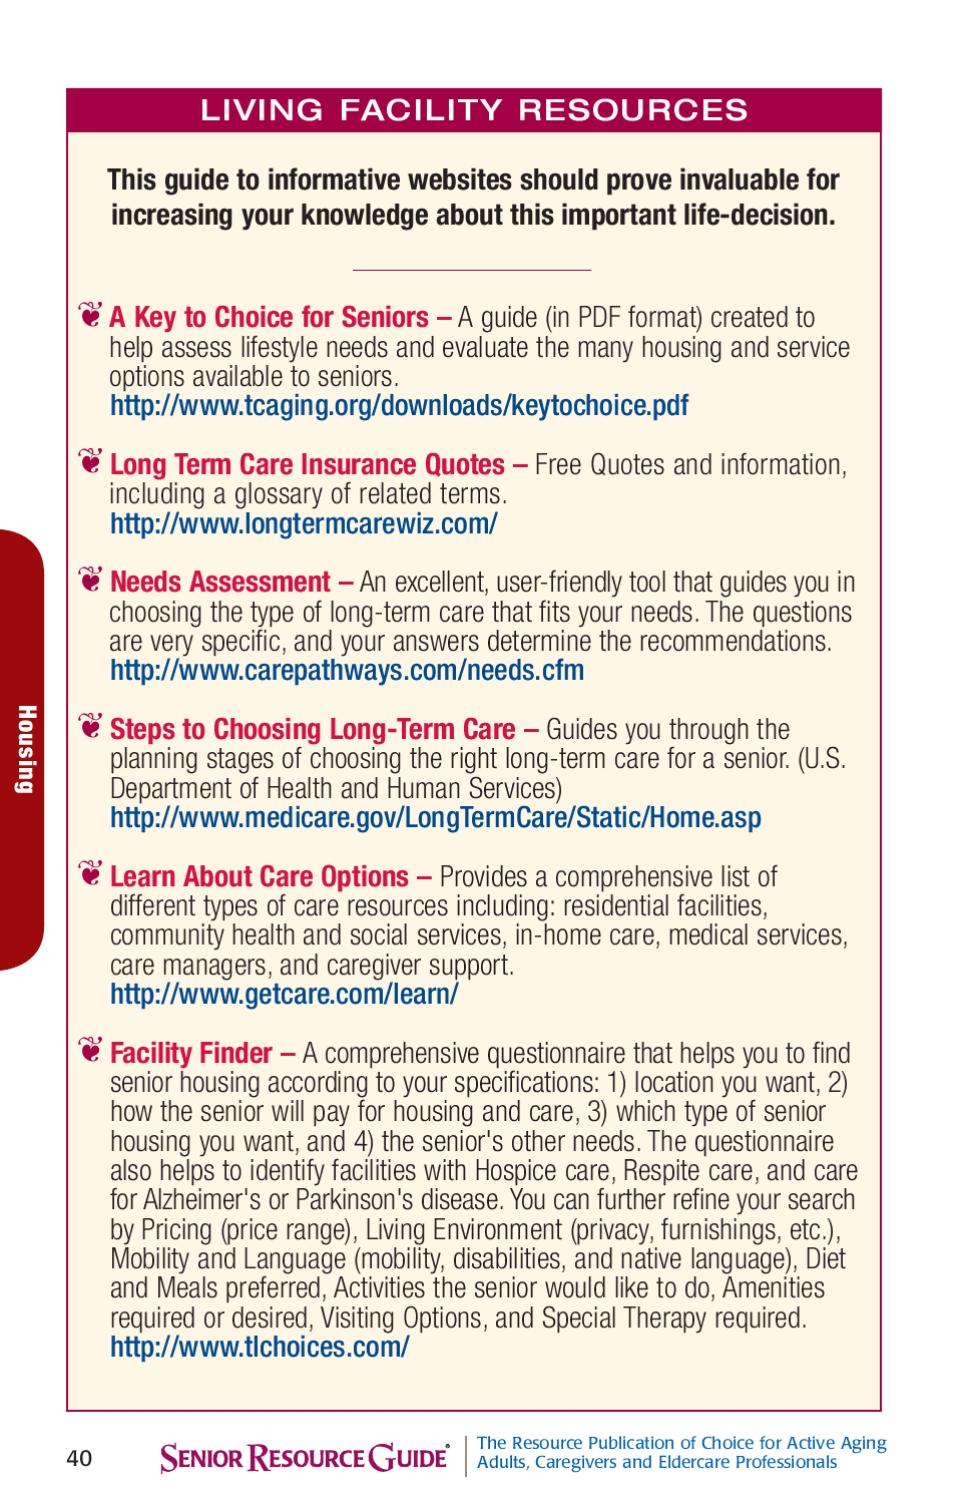 Long Term Care Insurance Quotes Senior Resource Guide Southeastsrg Services Inc Issuu